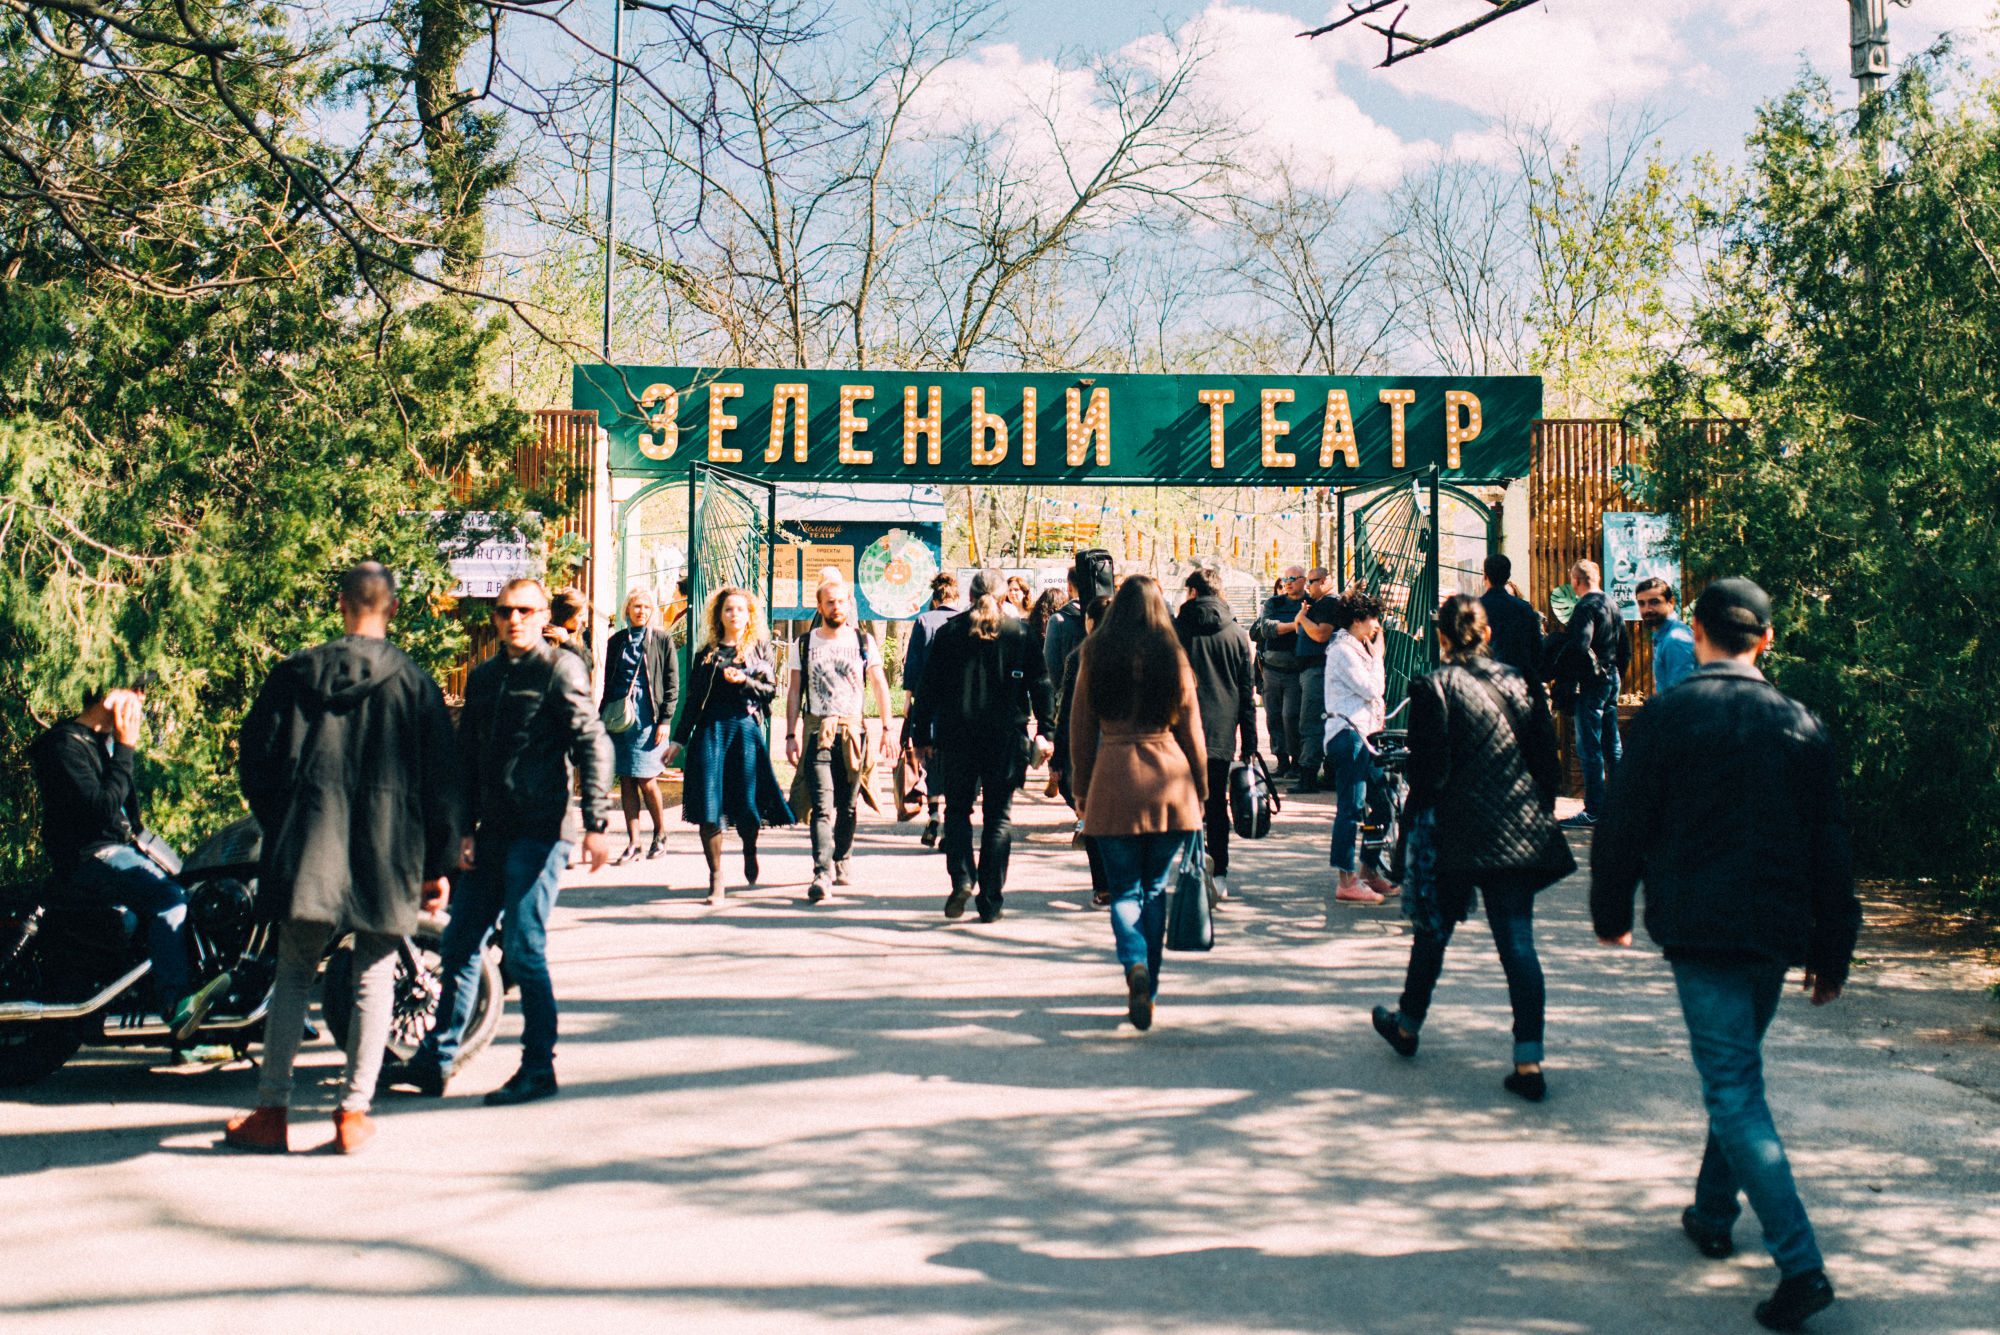 Theaters in Odessa: a selection of sites